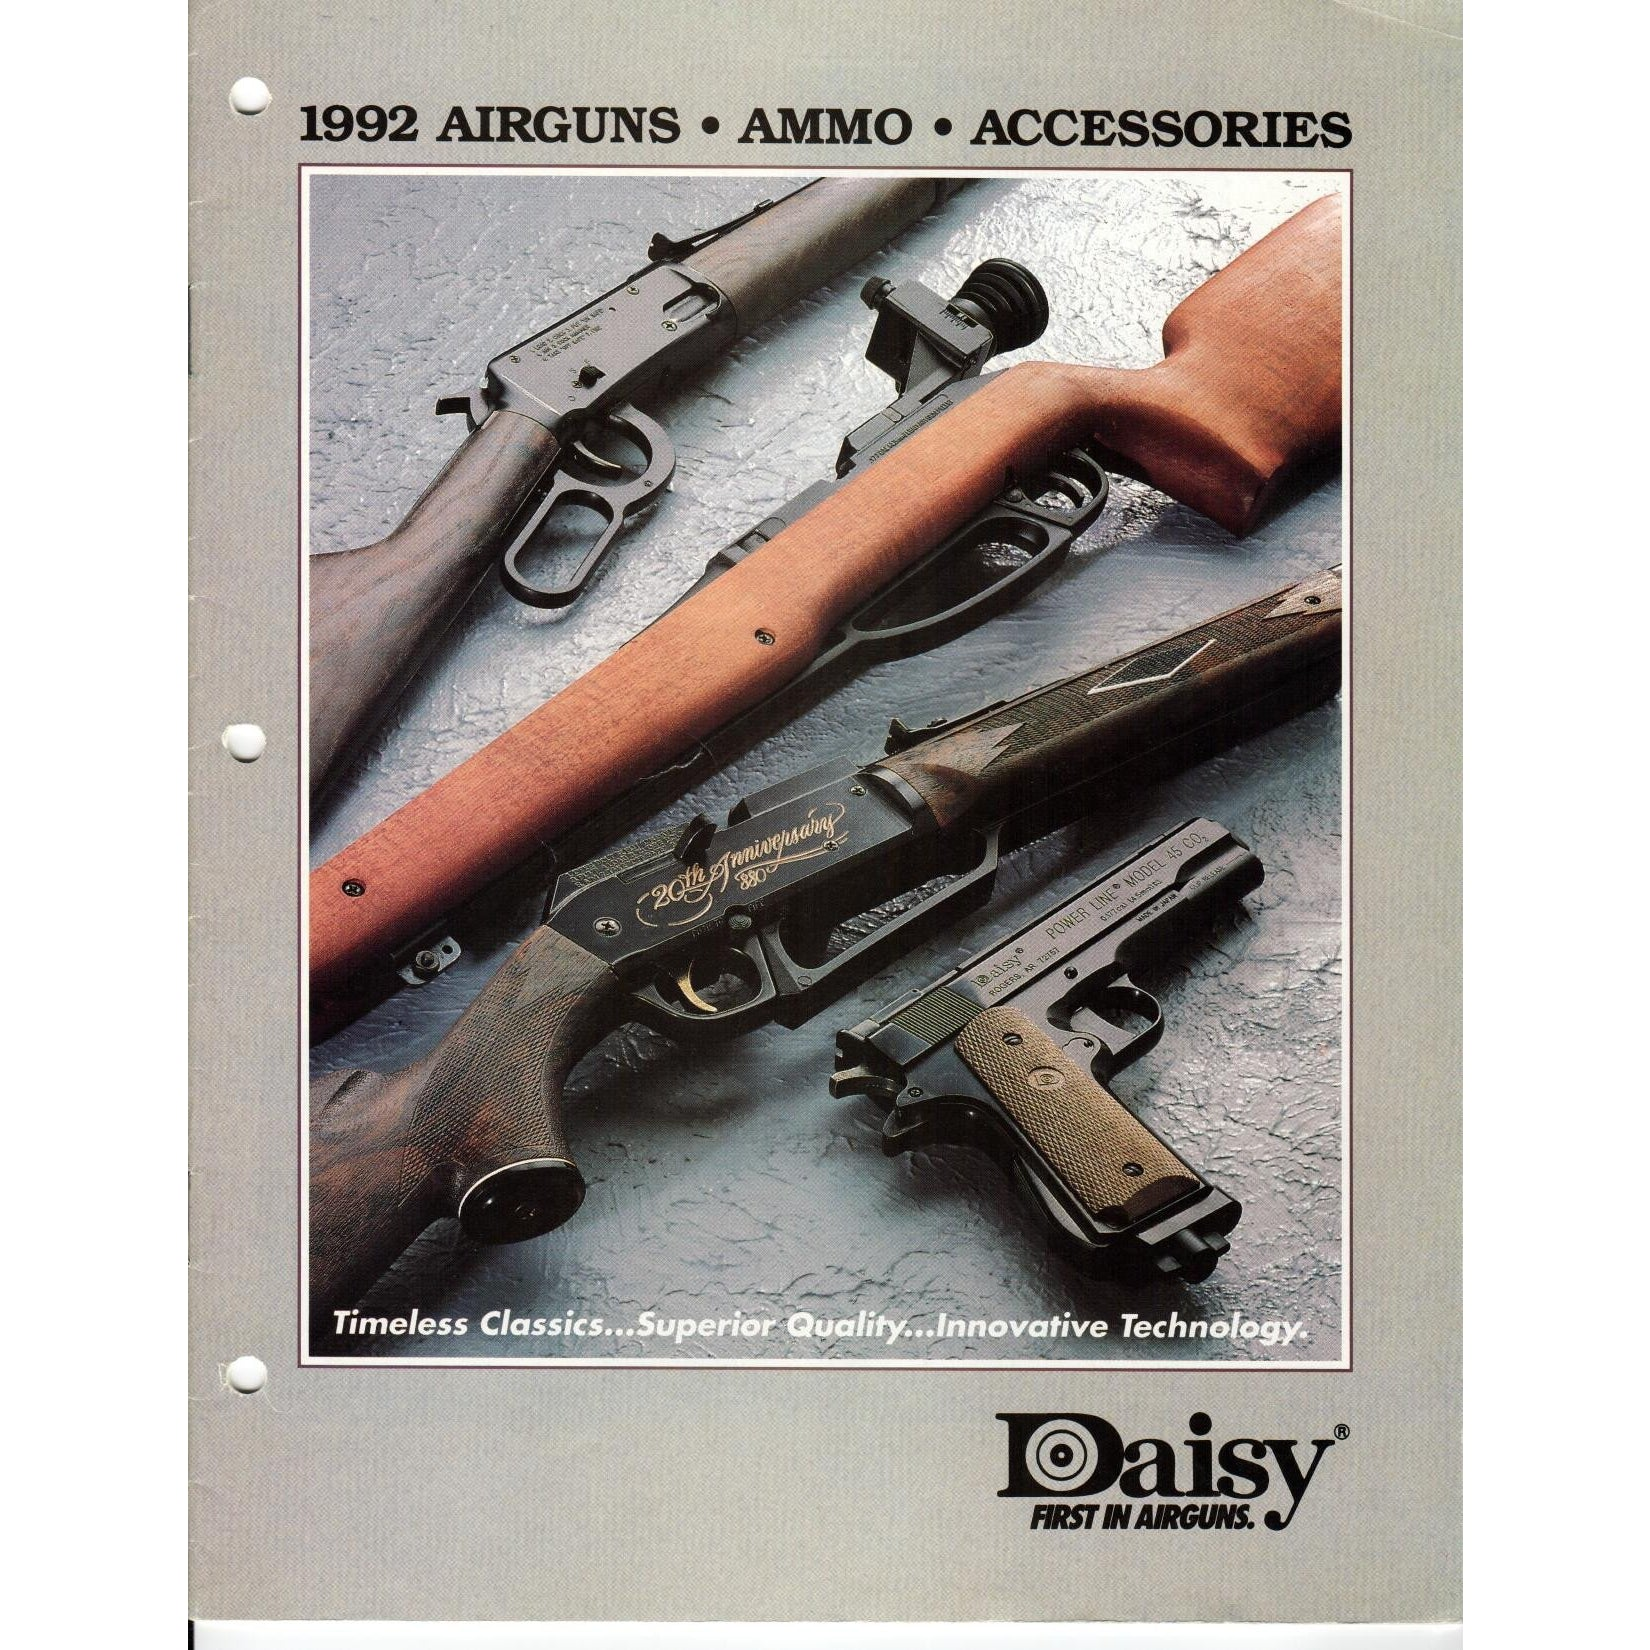 Daisy 1992 Airguns, Ammo & Accessories,Catalogues & Brochures- Canada Brass